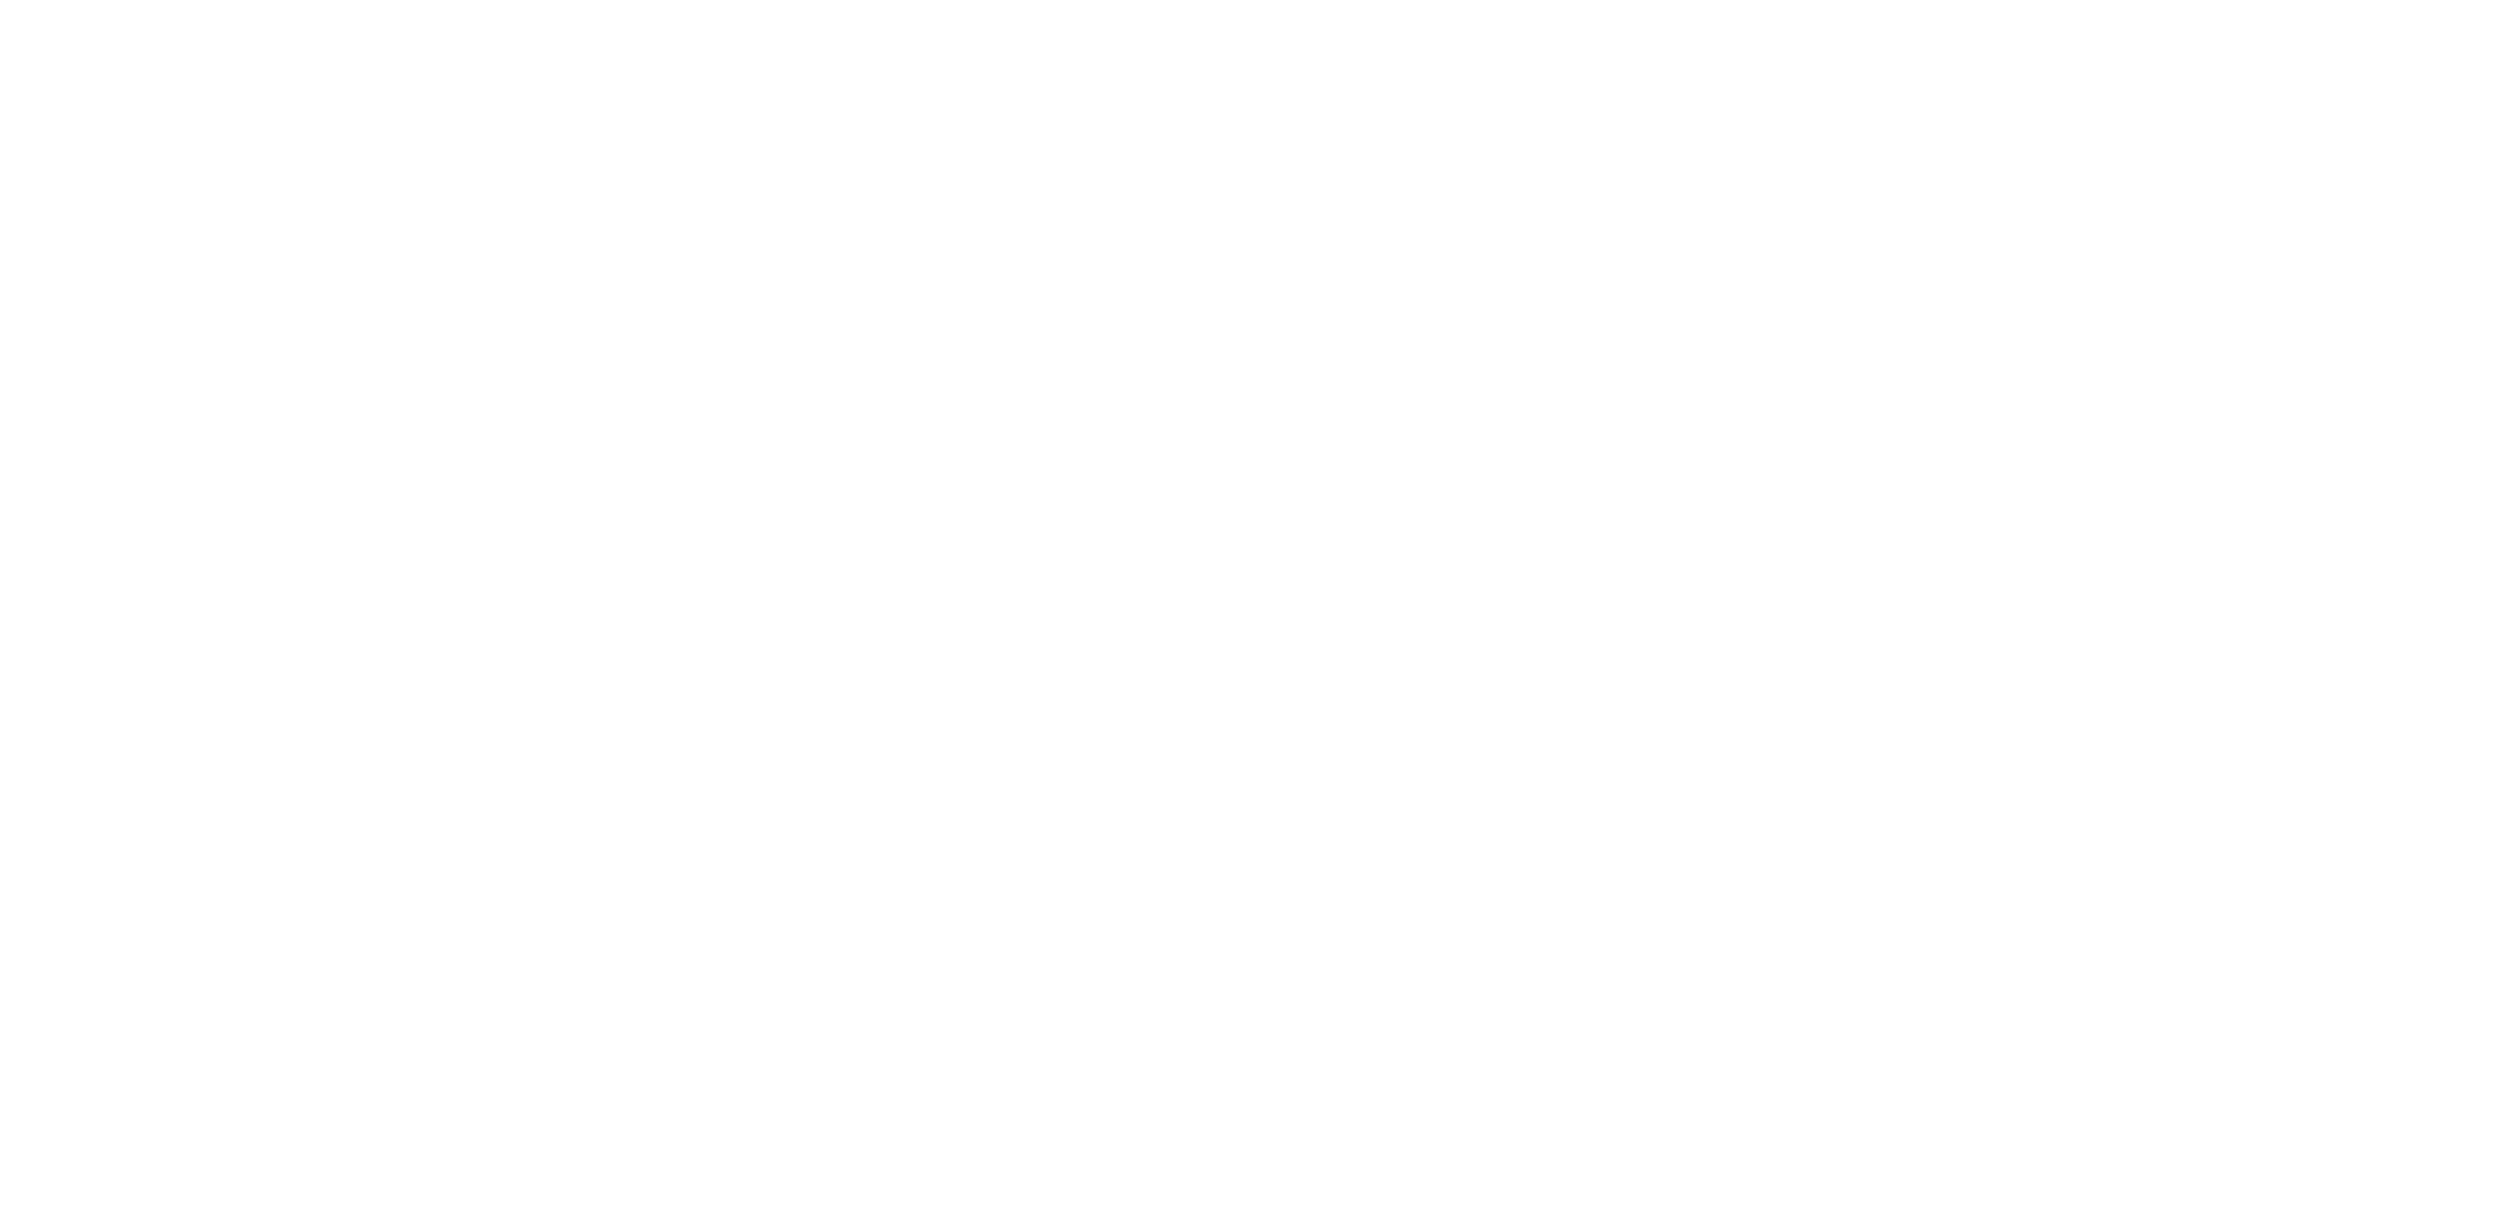 footer-barcode